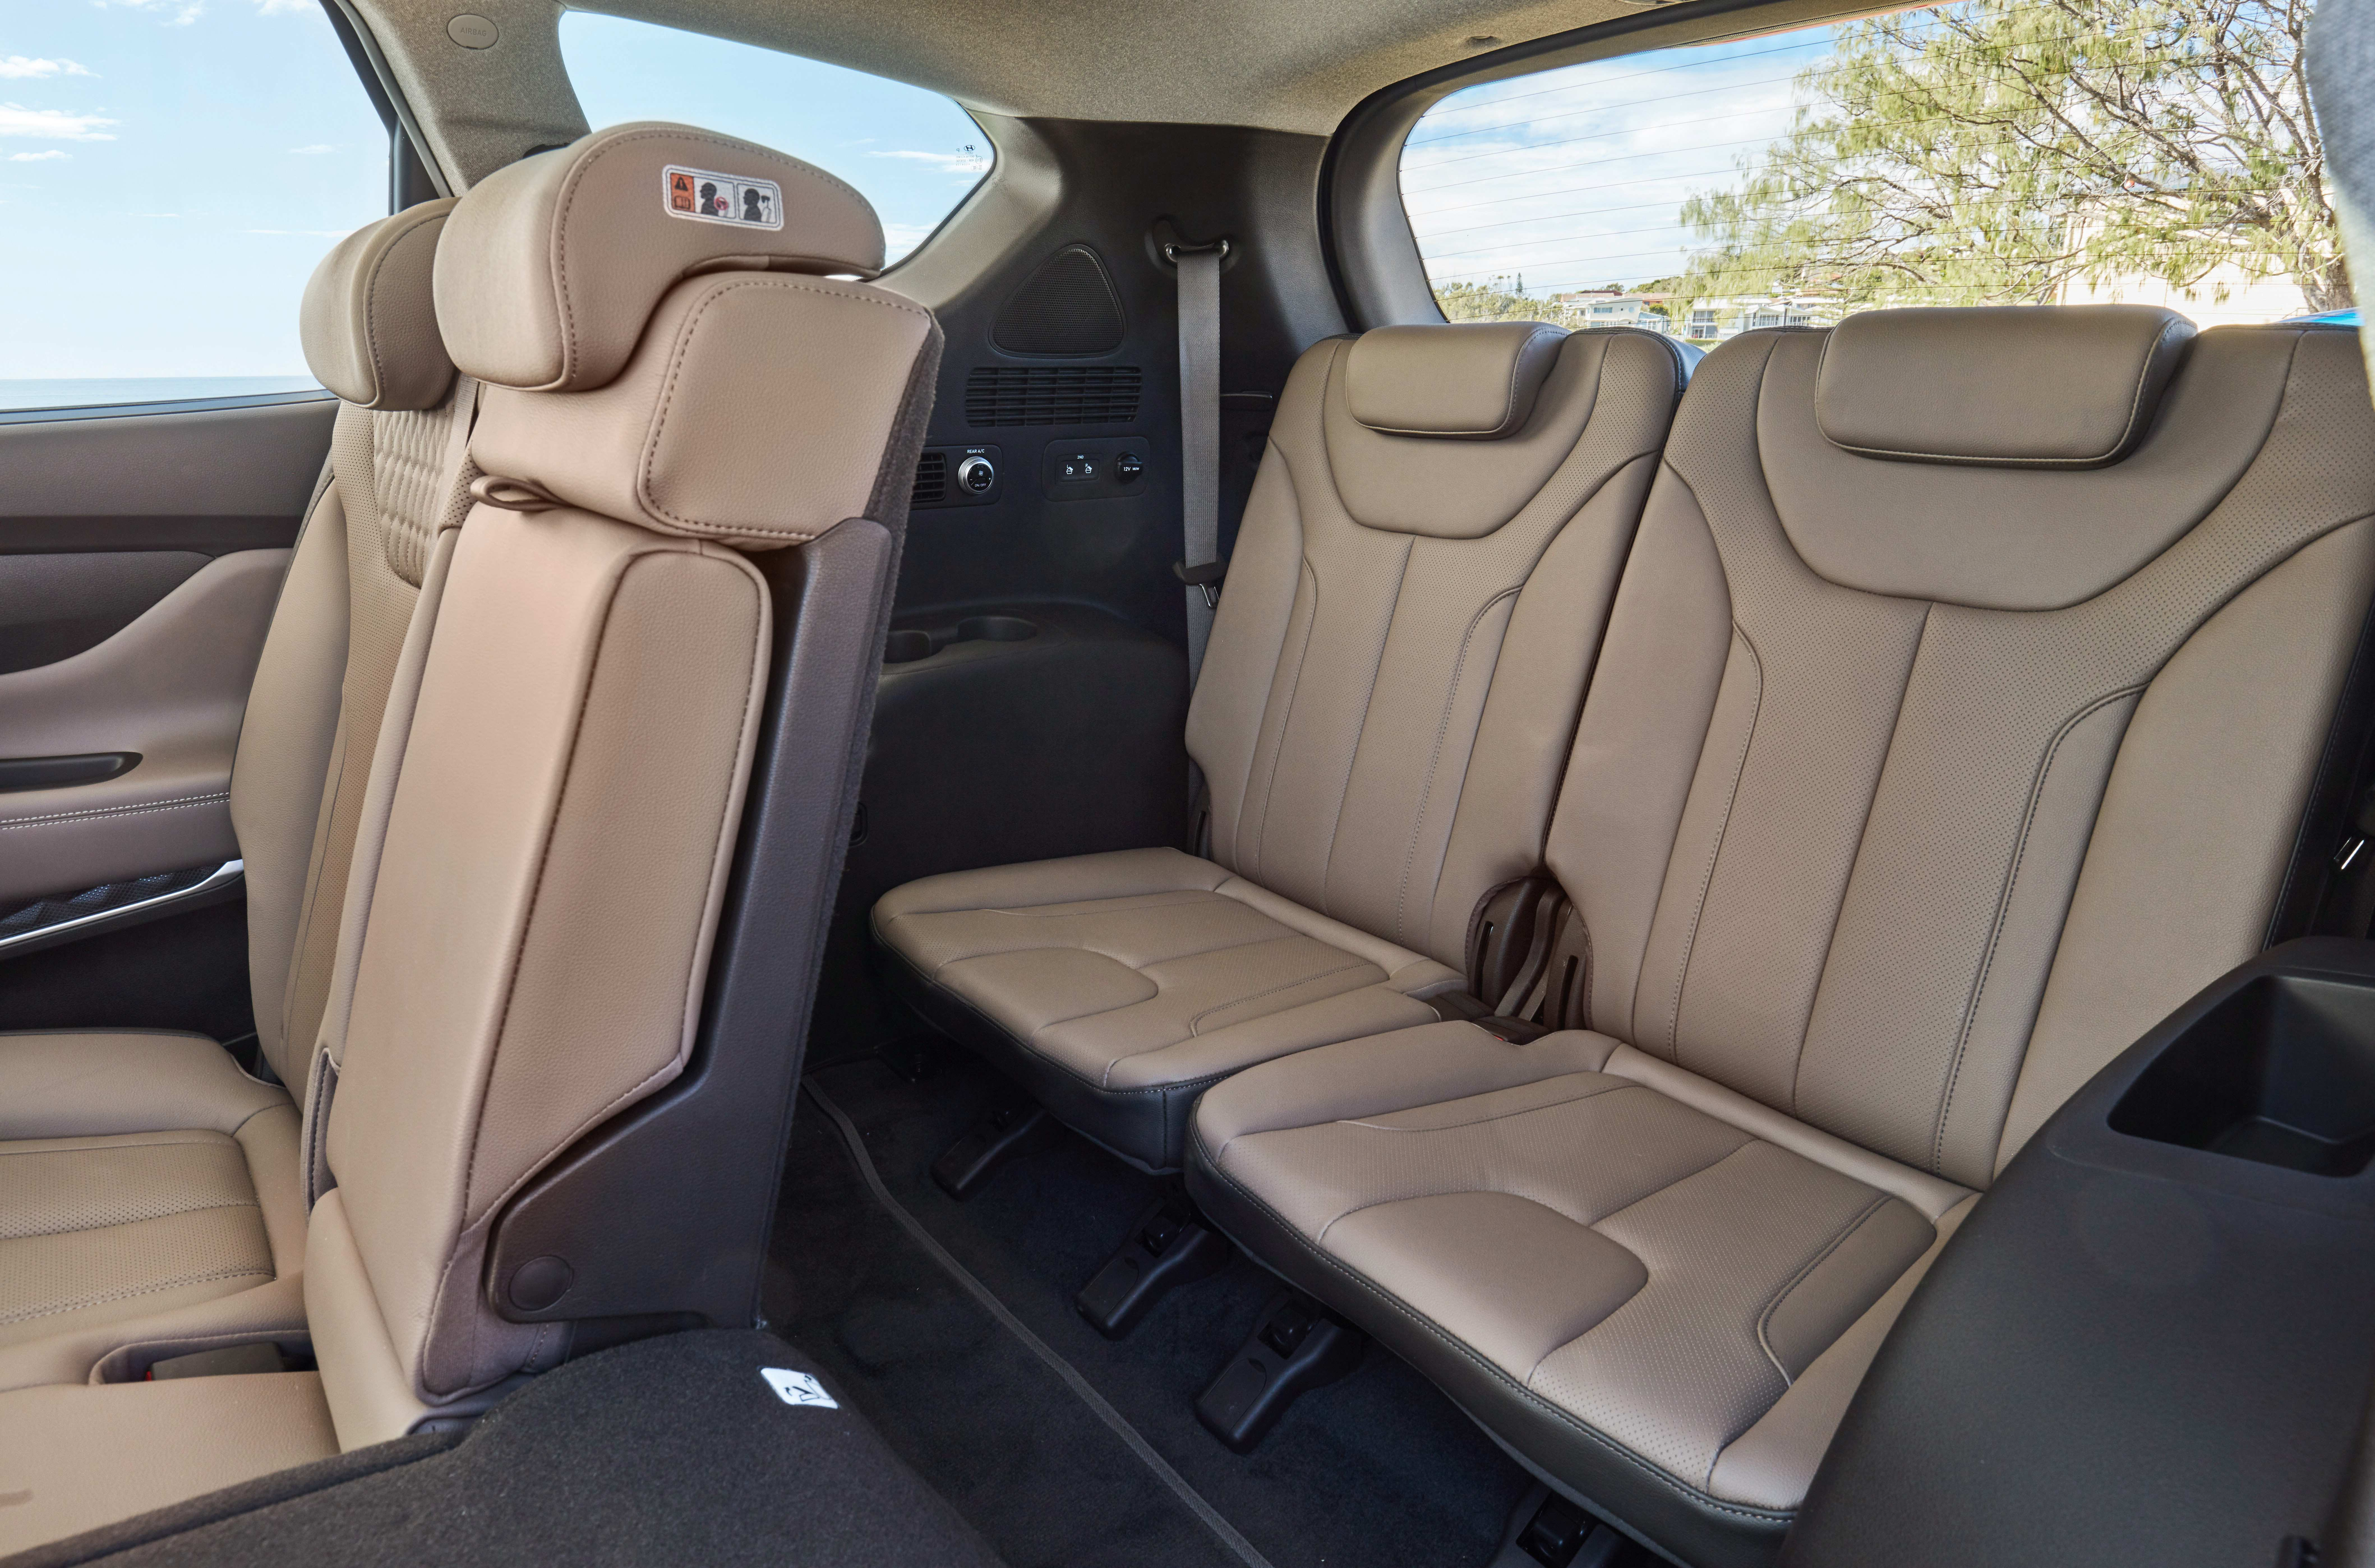 82 All New 2019 Hyundai Santa Fe Interior Review And Release Date